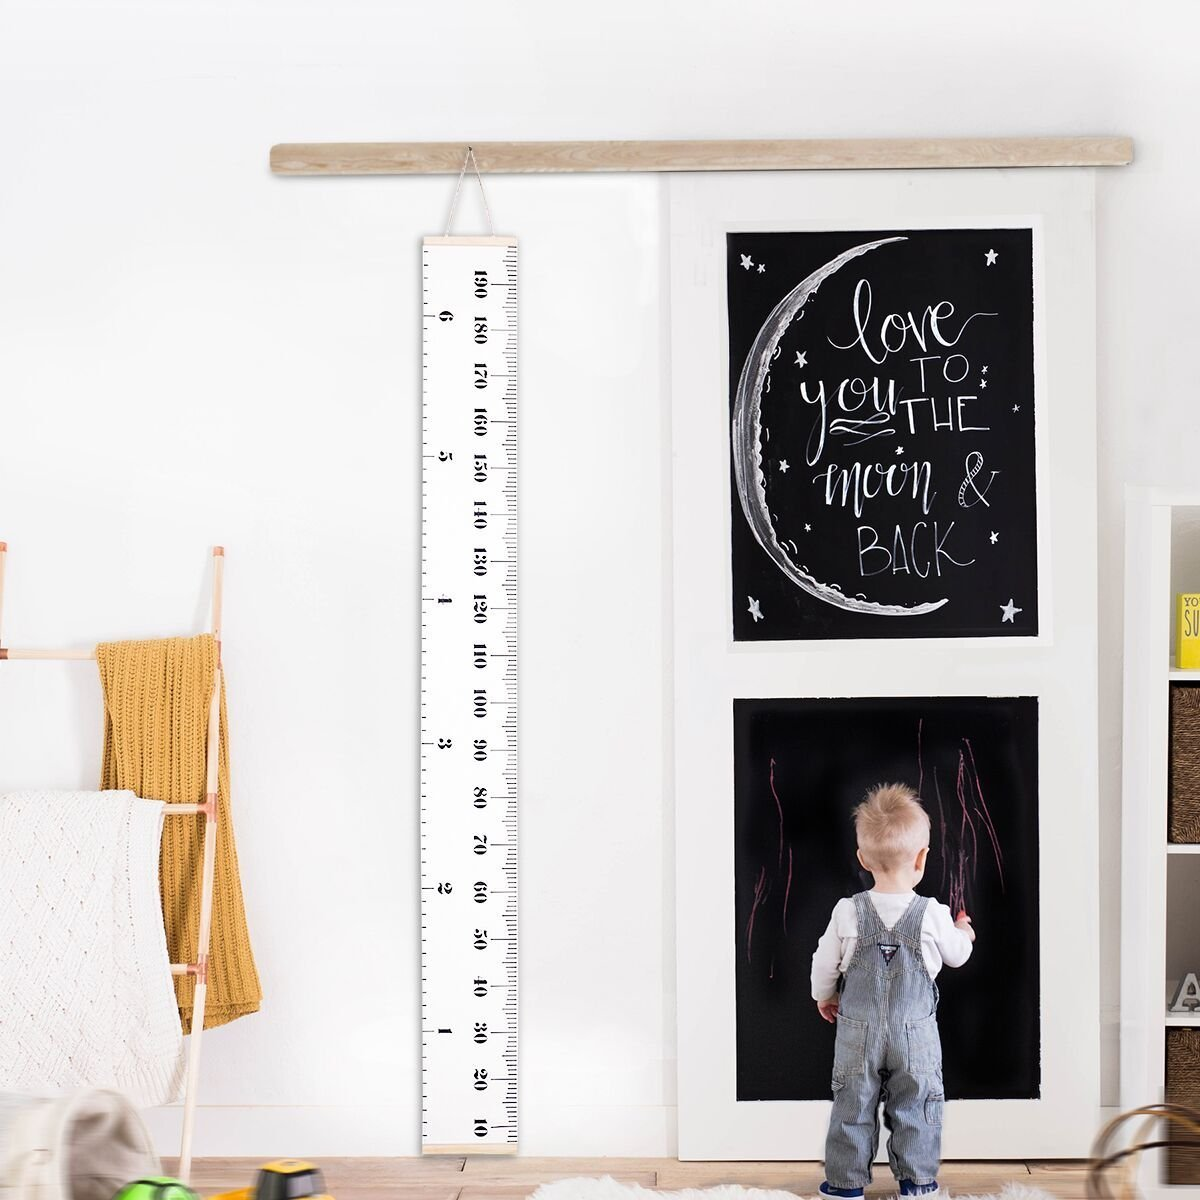 TKSTAR Removable Growth Chart Handing Ruler Wall Decor for Kids Wood Frame Height Measurement Rulers JU-BR04 (A)